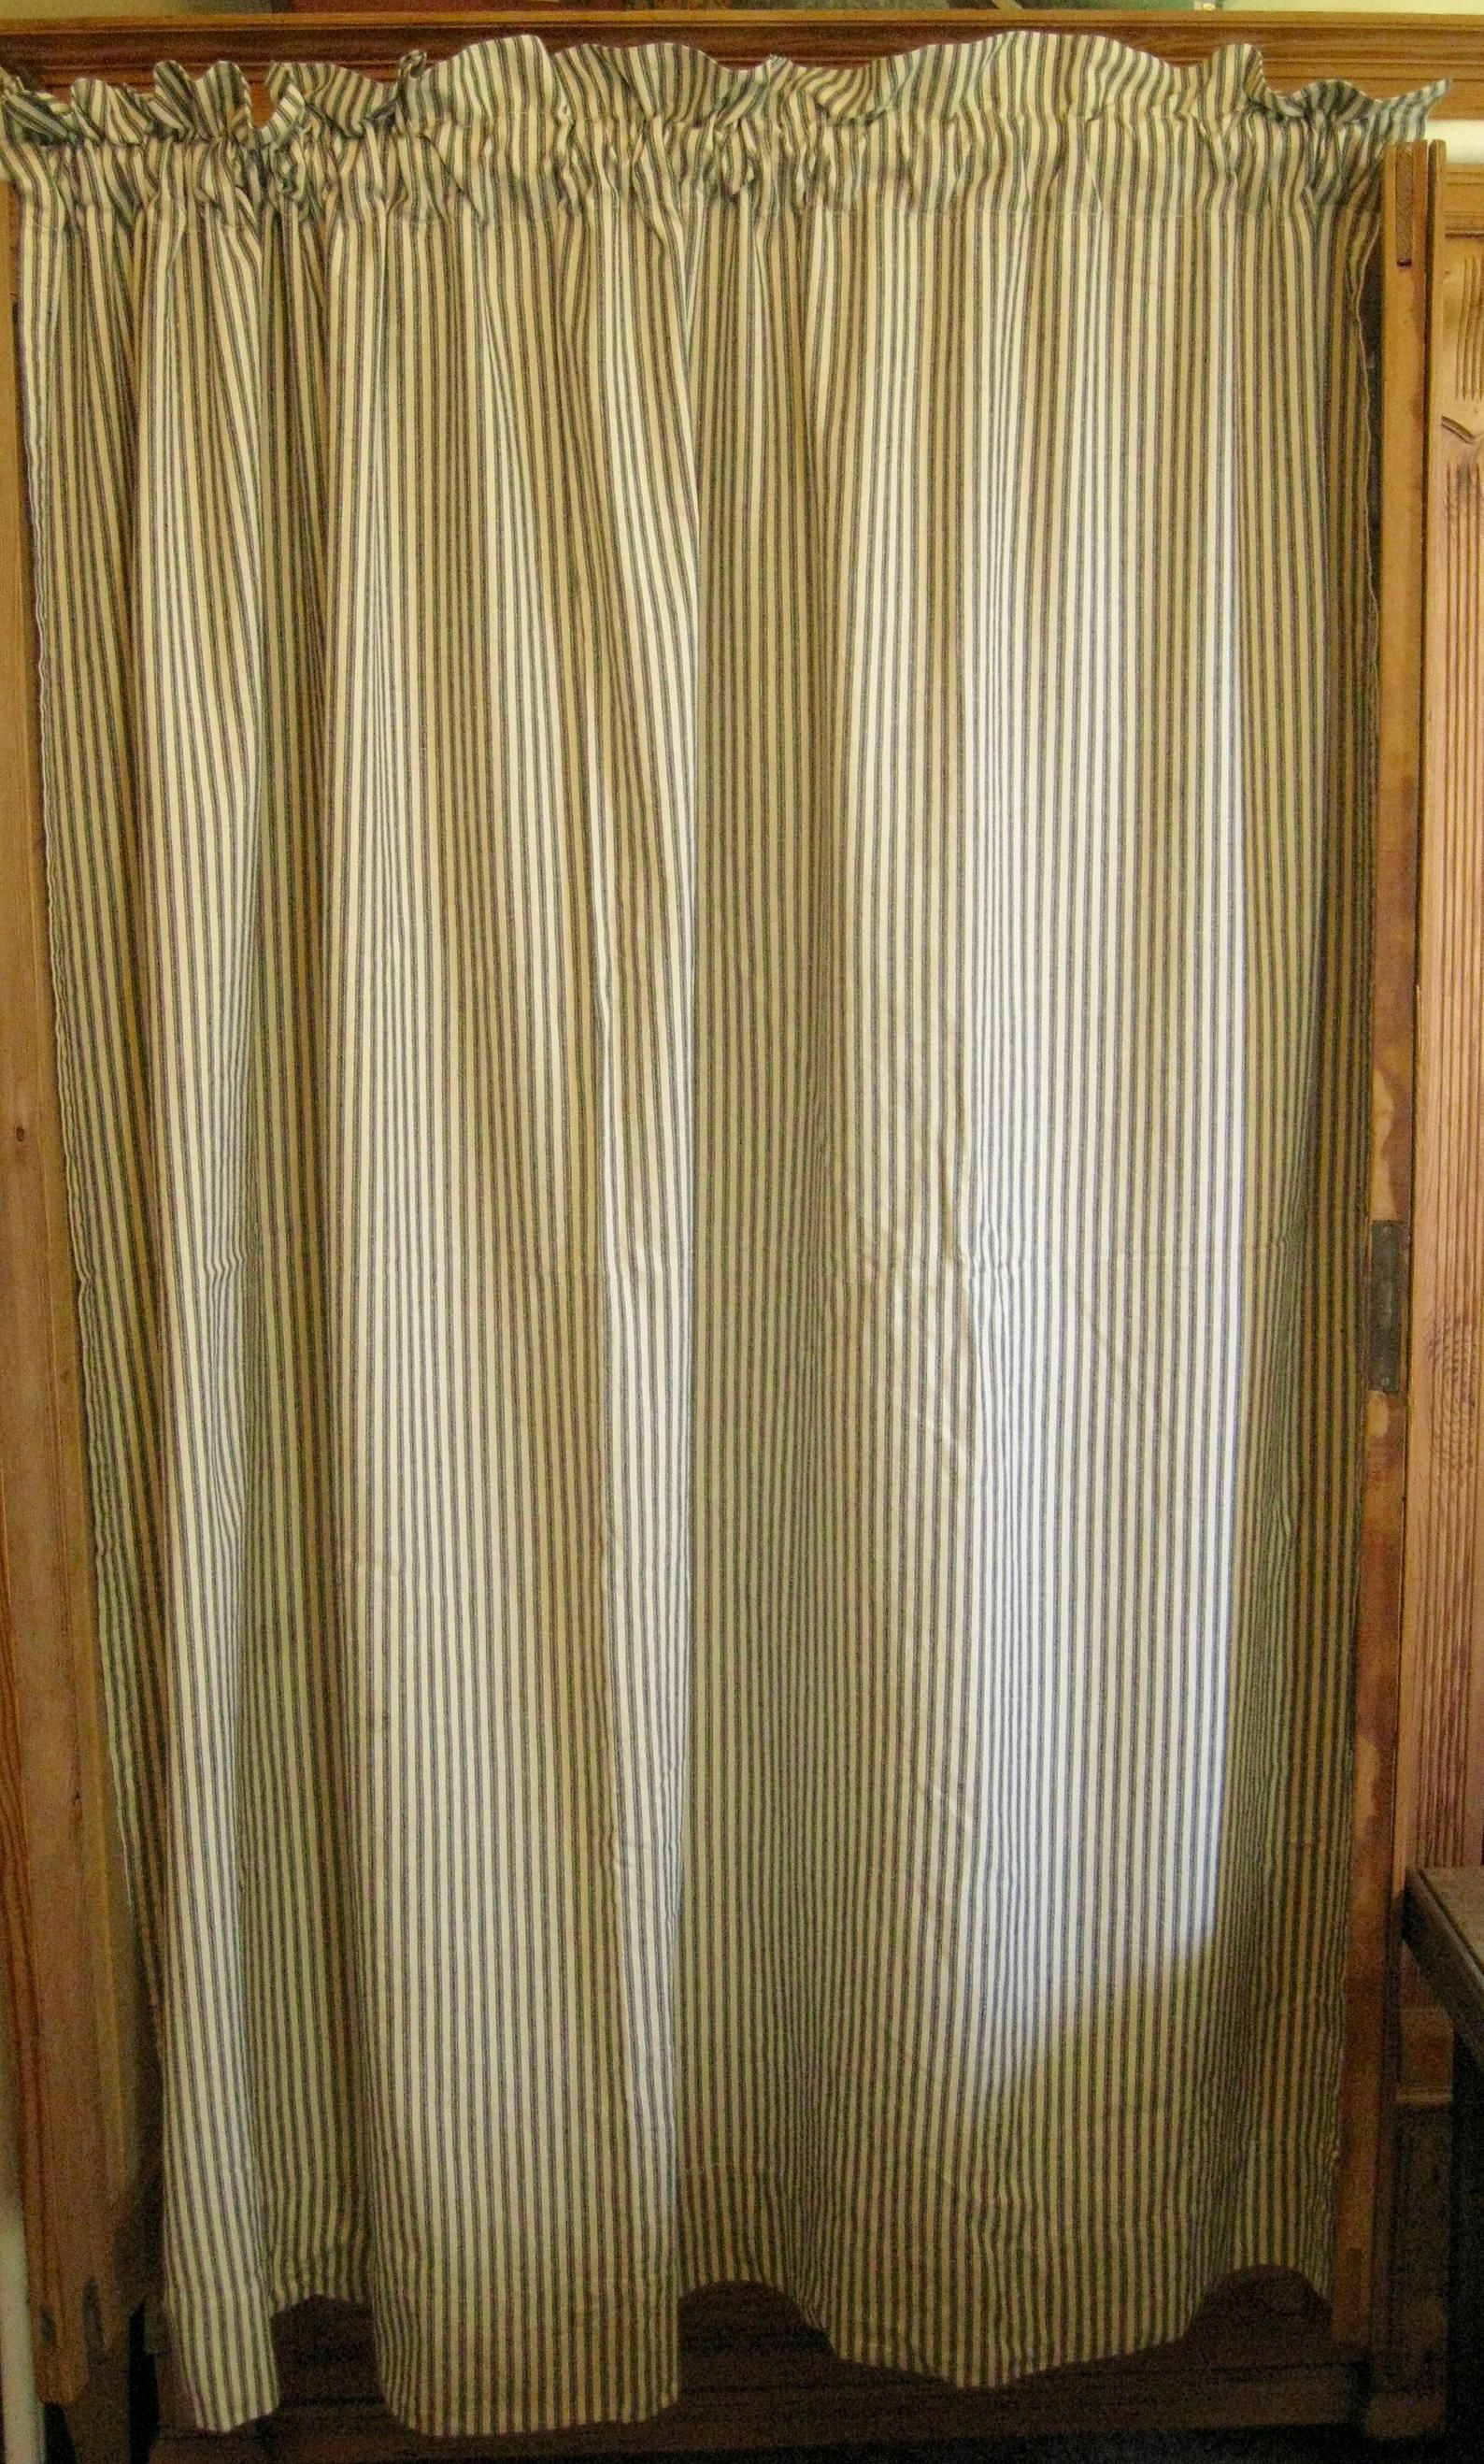 Pillow Ticking Fabric Curtain 100 Cotton Ready To Hang Etsy In